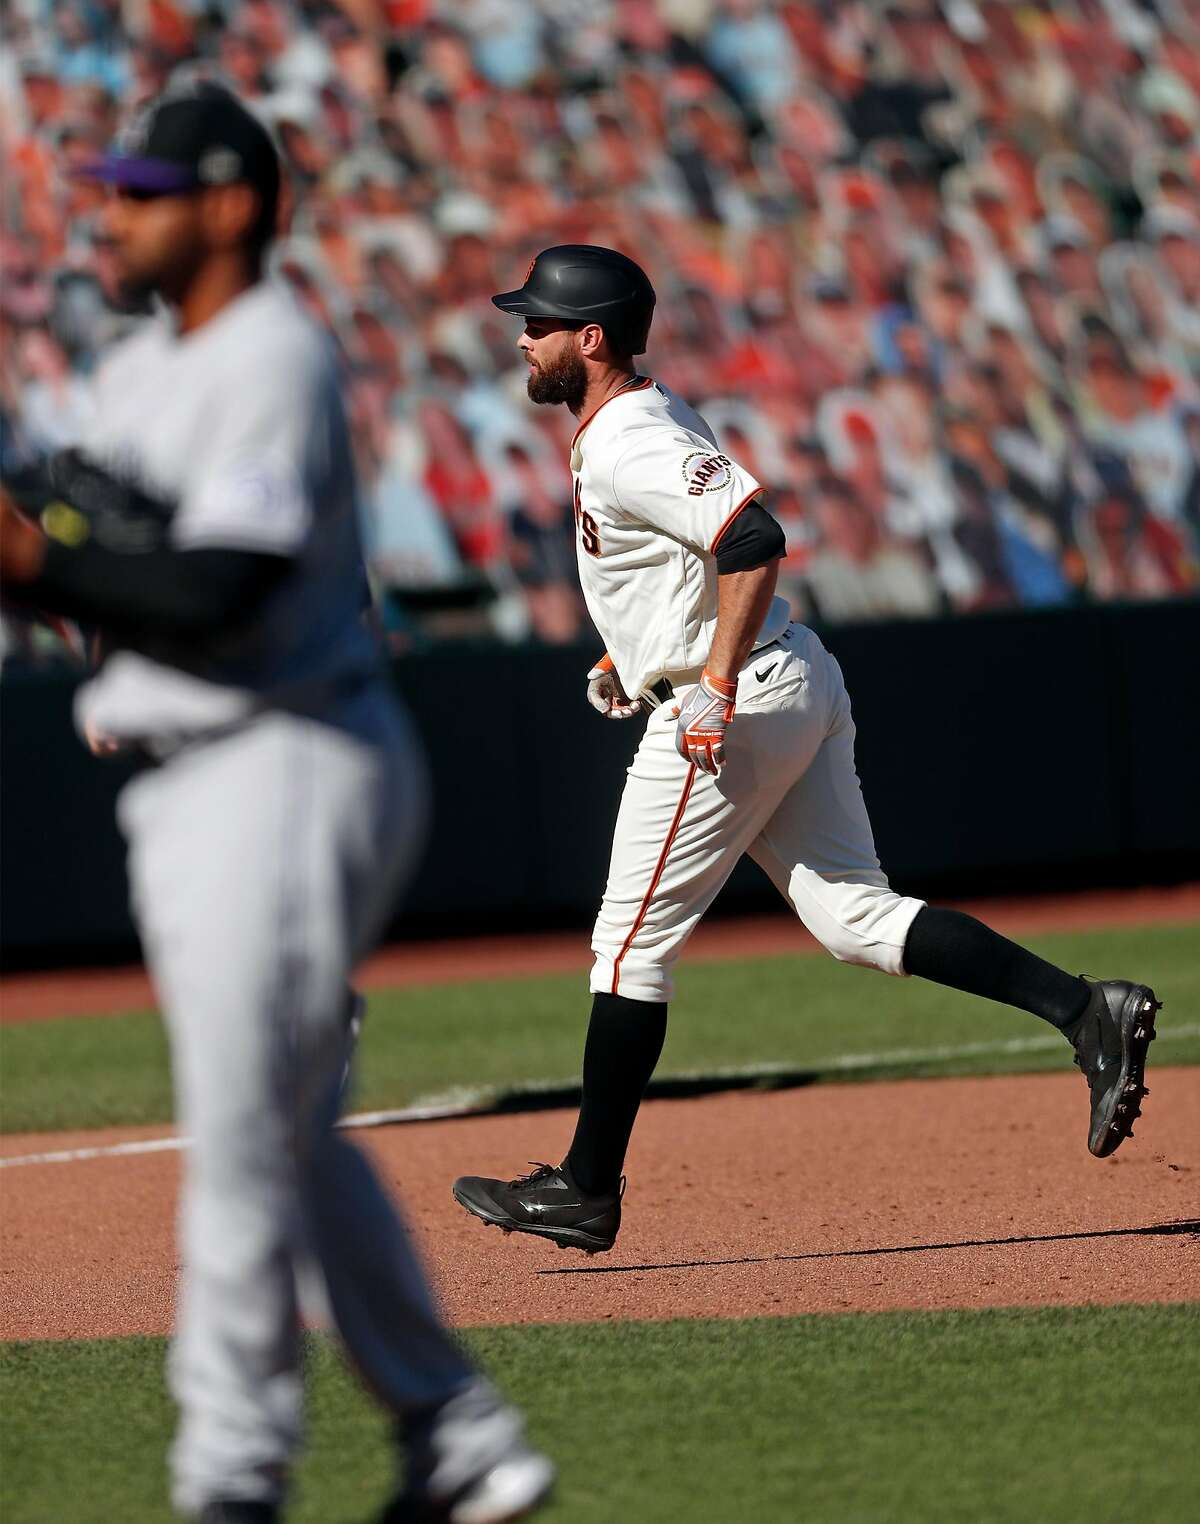 San Francisco Giants' Brandon Belt hits game-tying home run in 8th inning against Colorado Rockies in MLB game at Oracle Park in San Francisco, Calif., on Thursday, September 24, 2020.